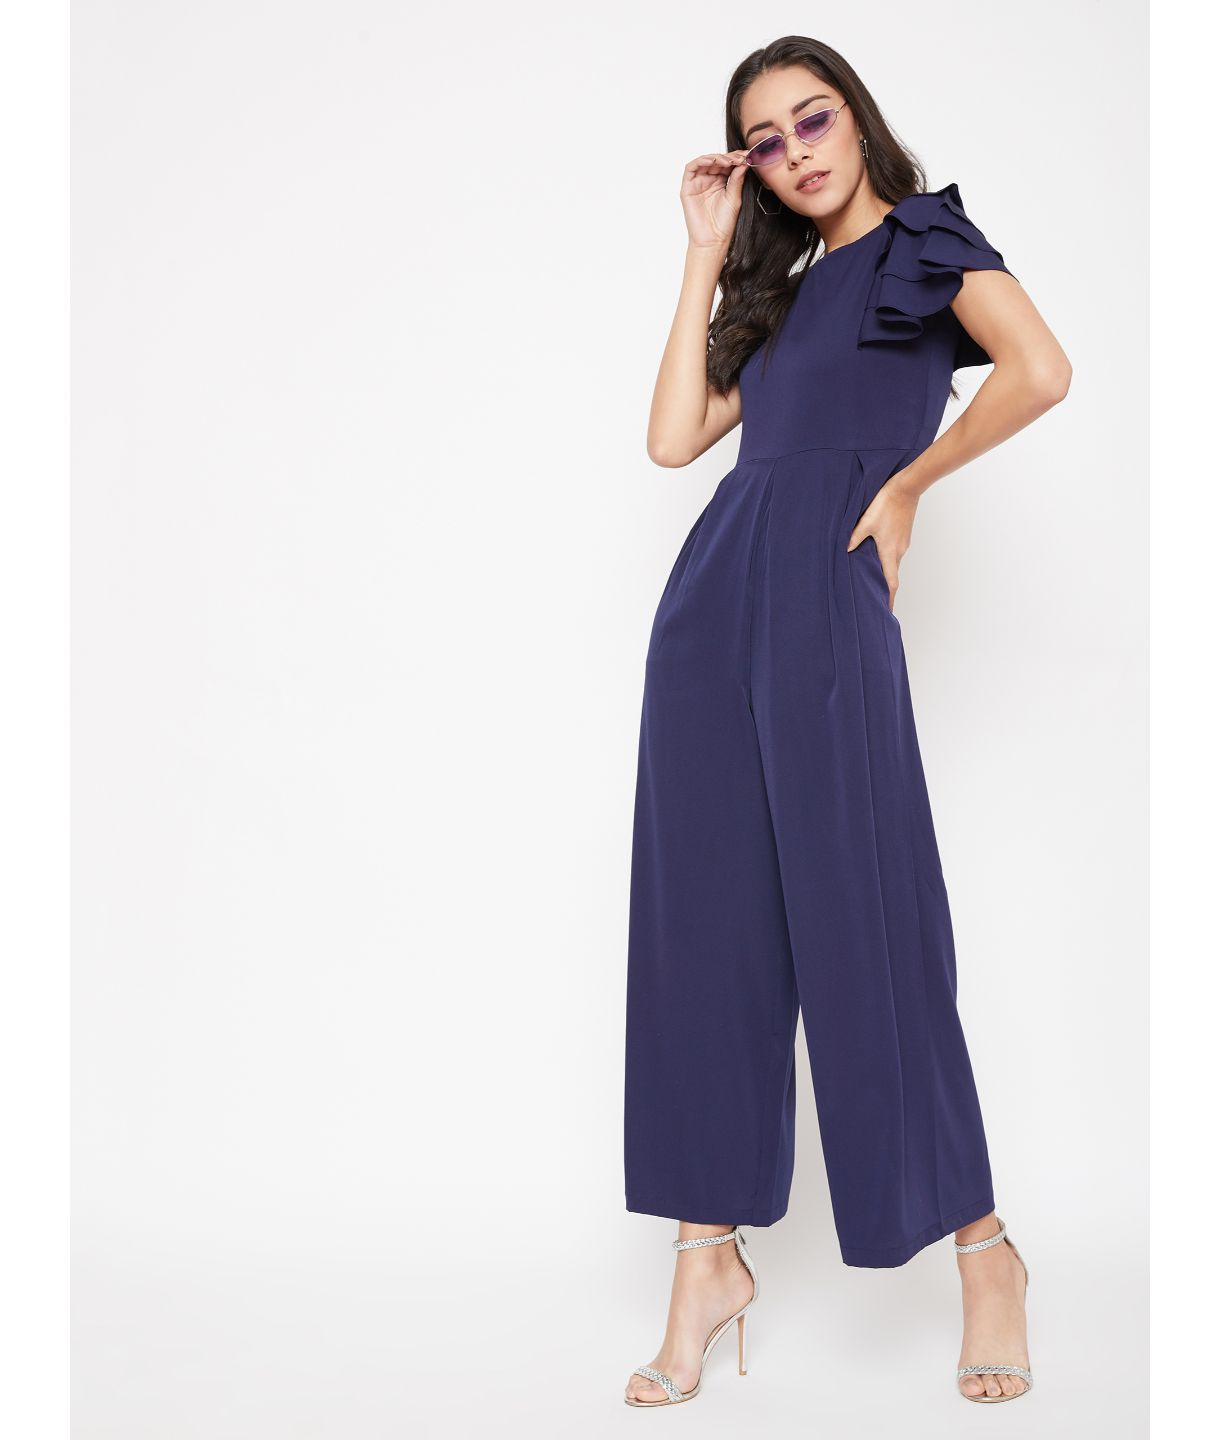 Uptownie Plus Navy Blue Solid Relaxed Fit Full Length Jumpsuit With Ruffled Sleeves